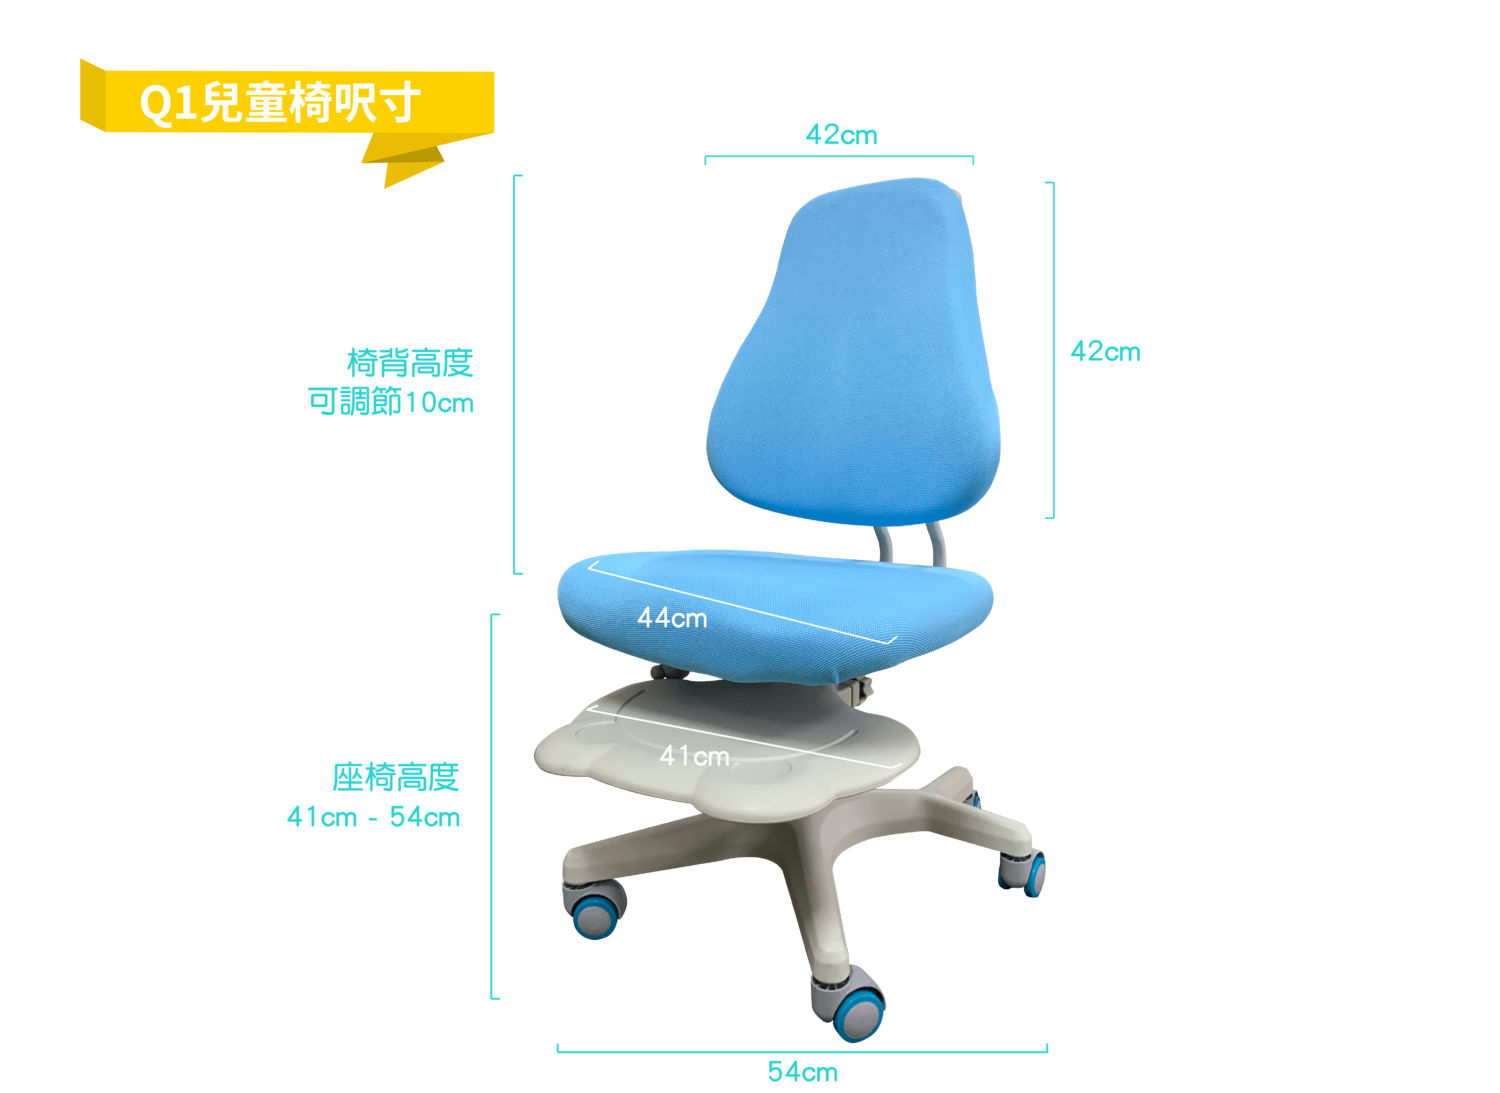 Q1兒童椅呎寸-Chair size-infographic